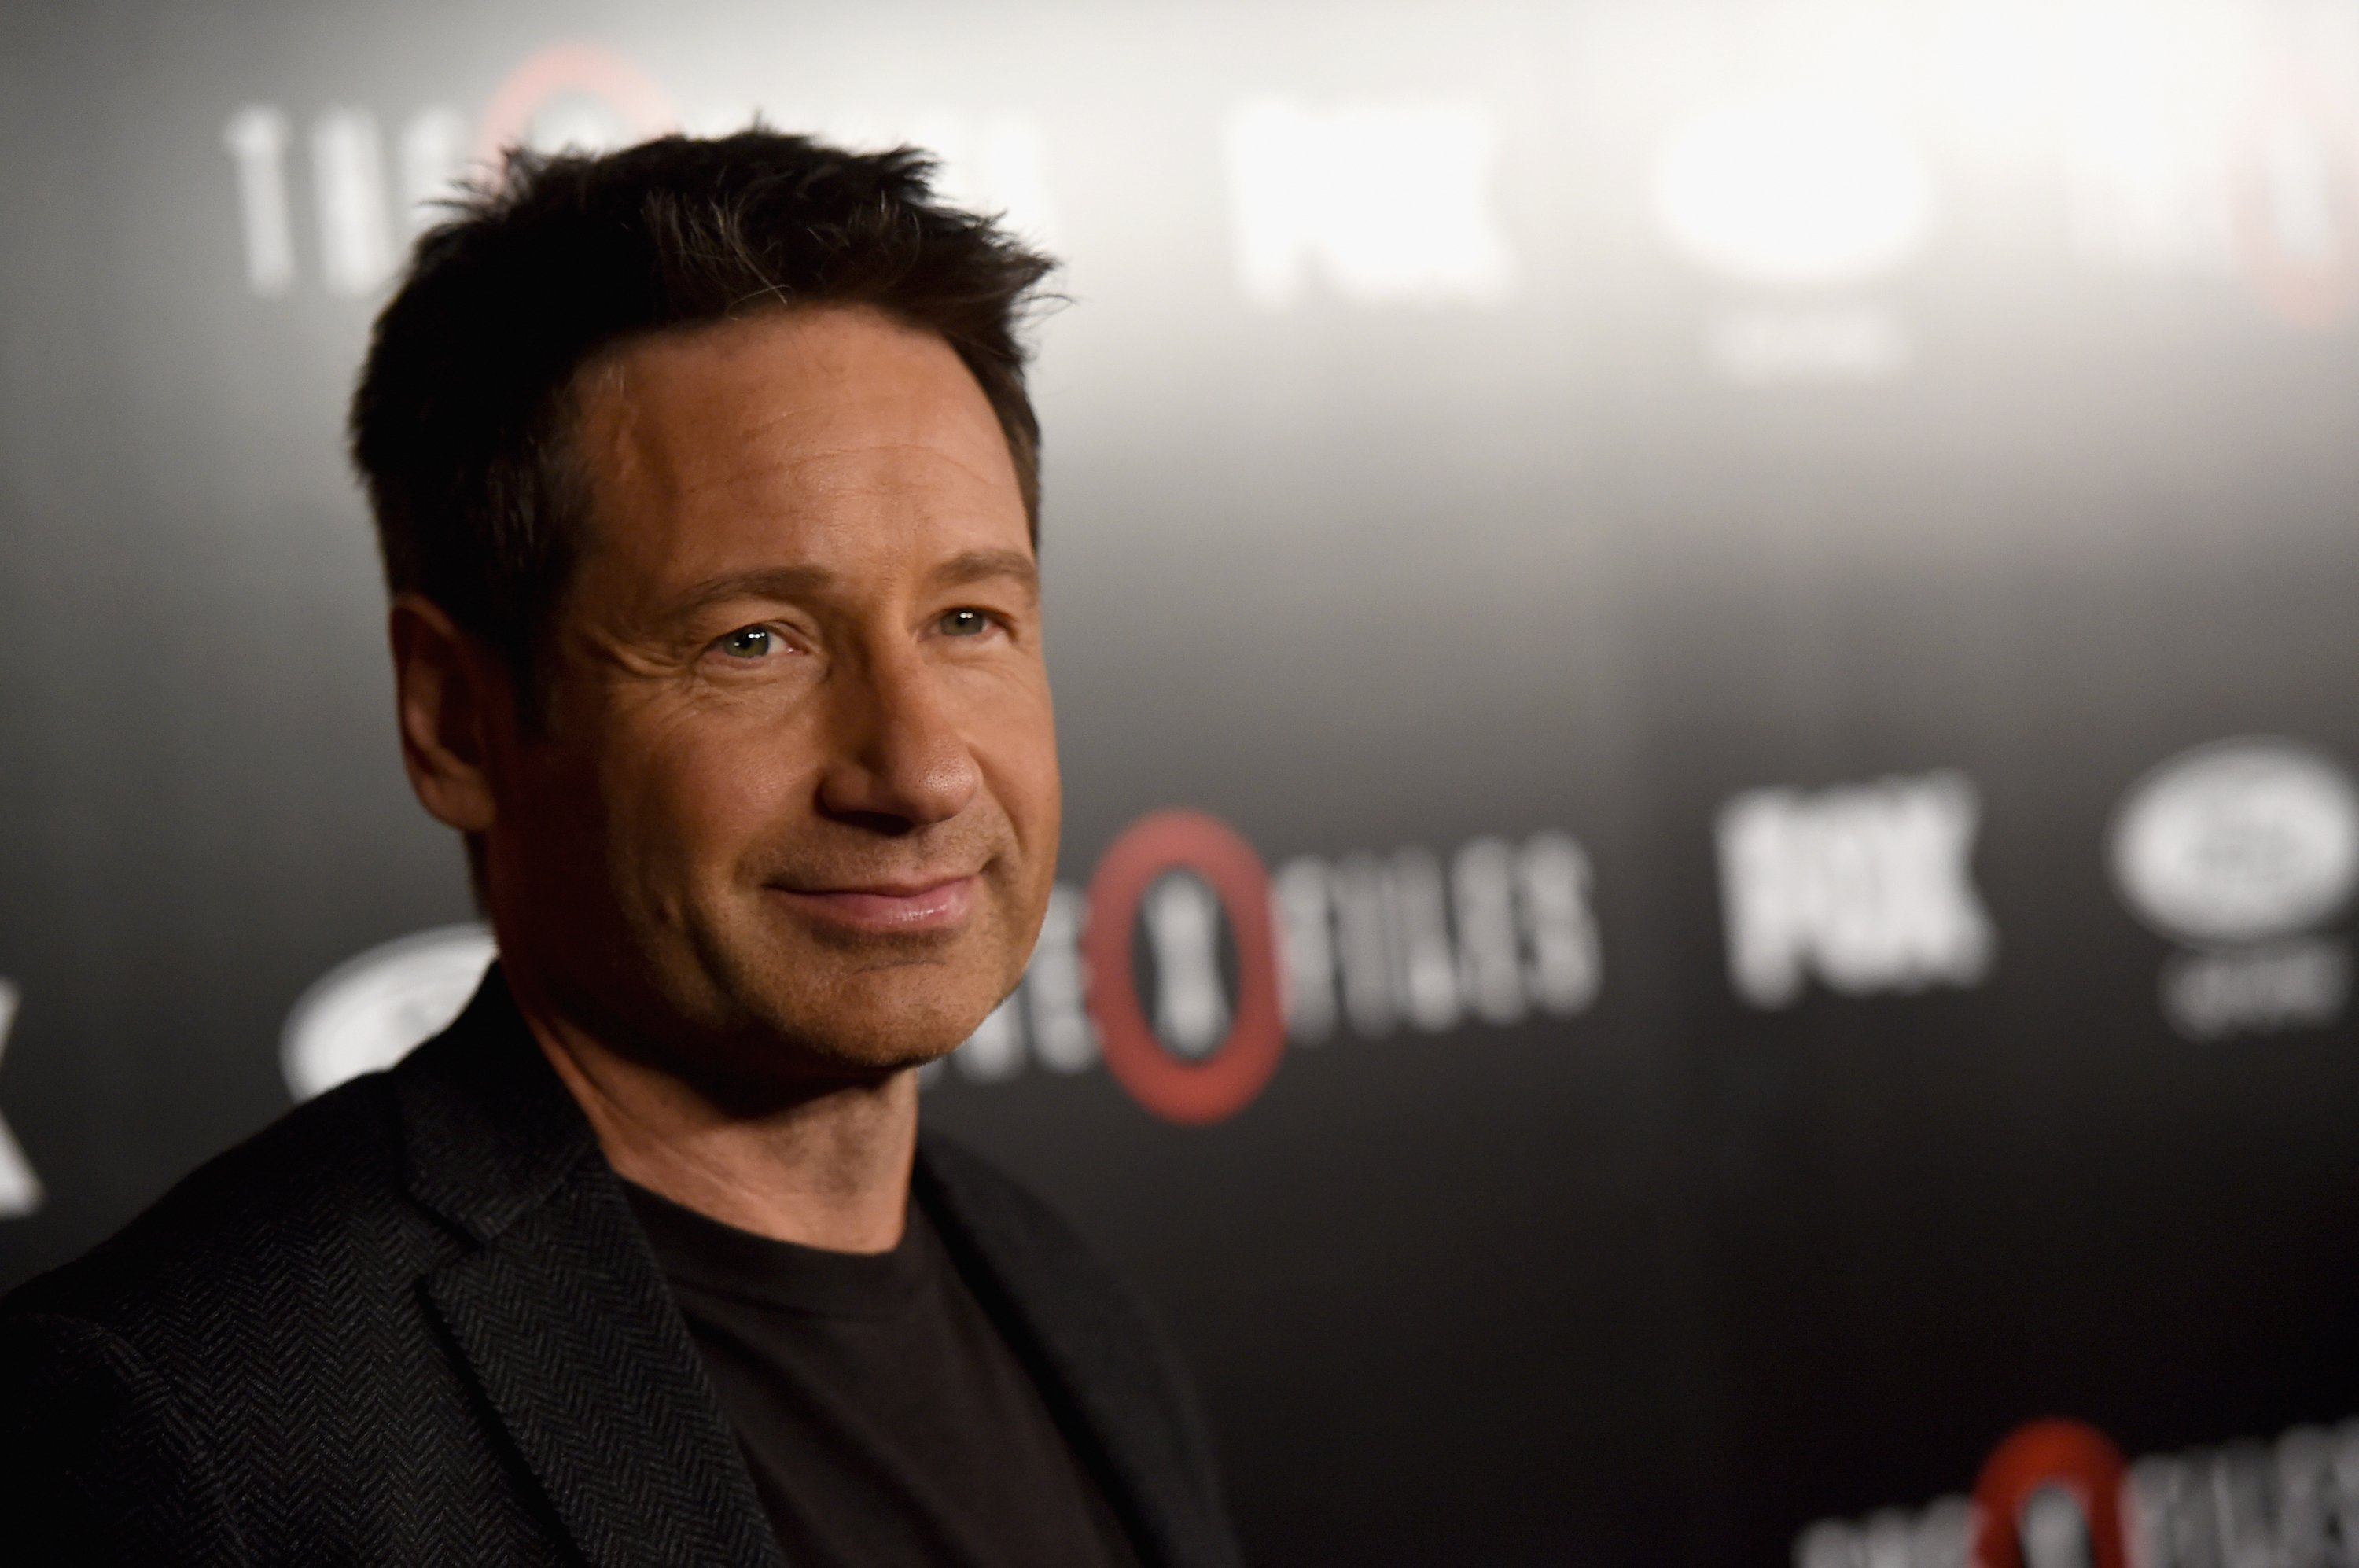 Image Credits: Getty Images | David Duchovny was involved in a lawsuit with the show's producers